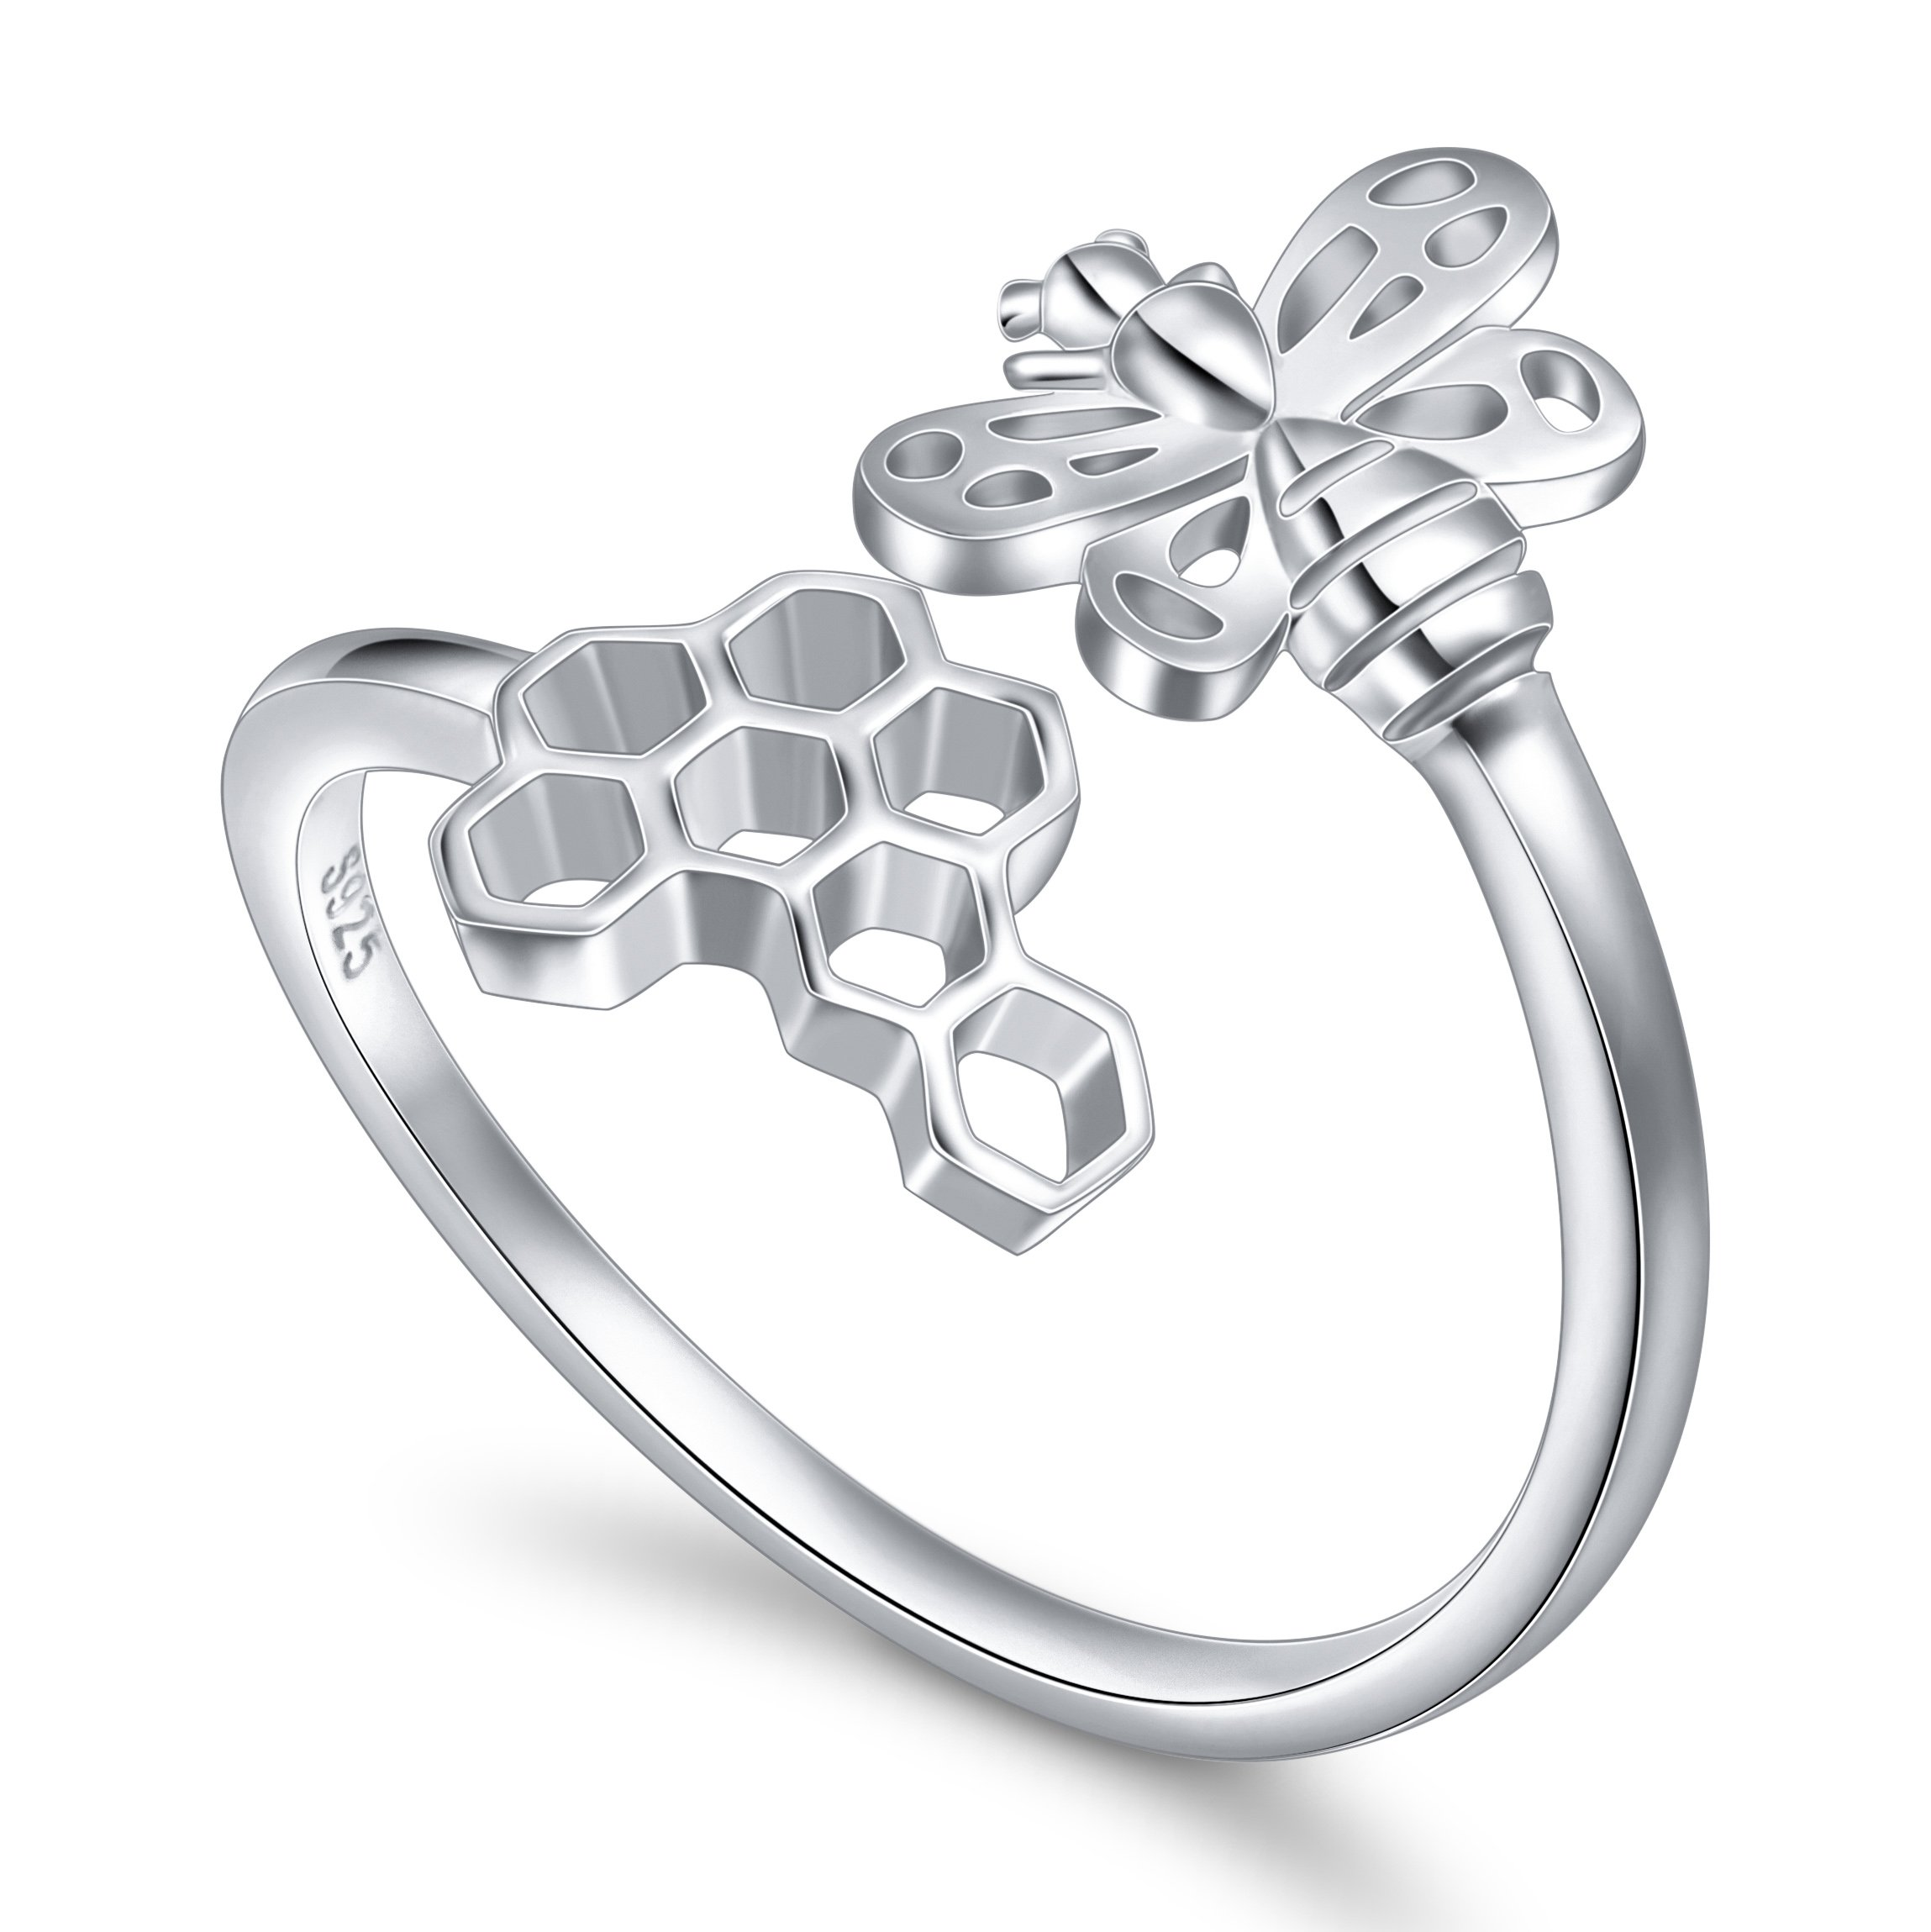 SILVER MOUNTAIN Honeycomb Bee Ring for Women S925 Sterling Silver Adjustable Wrap Open Ring